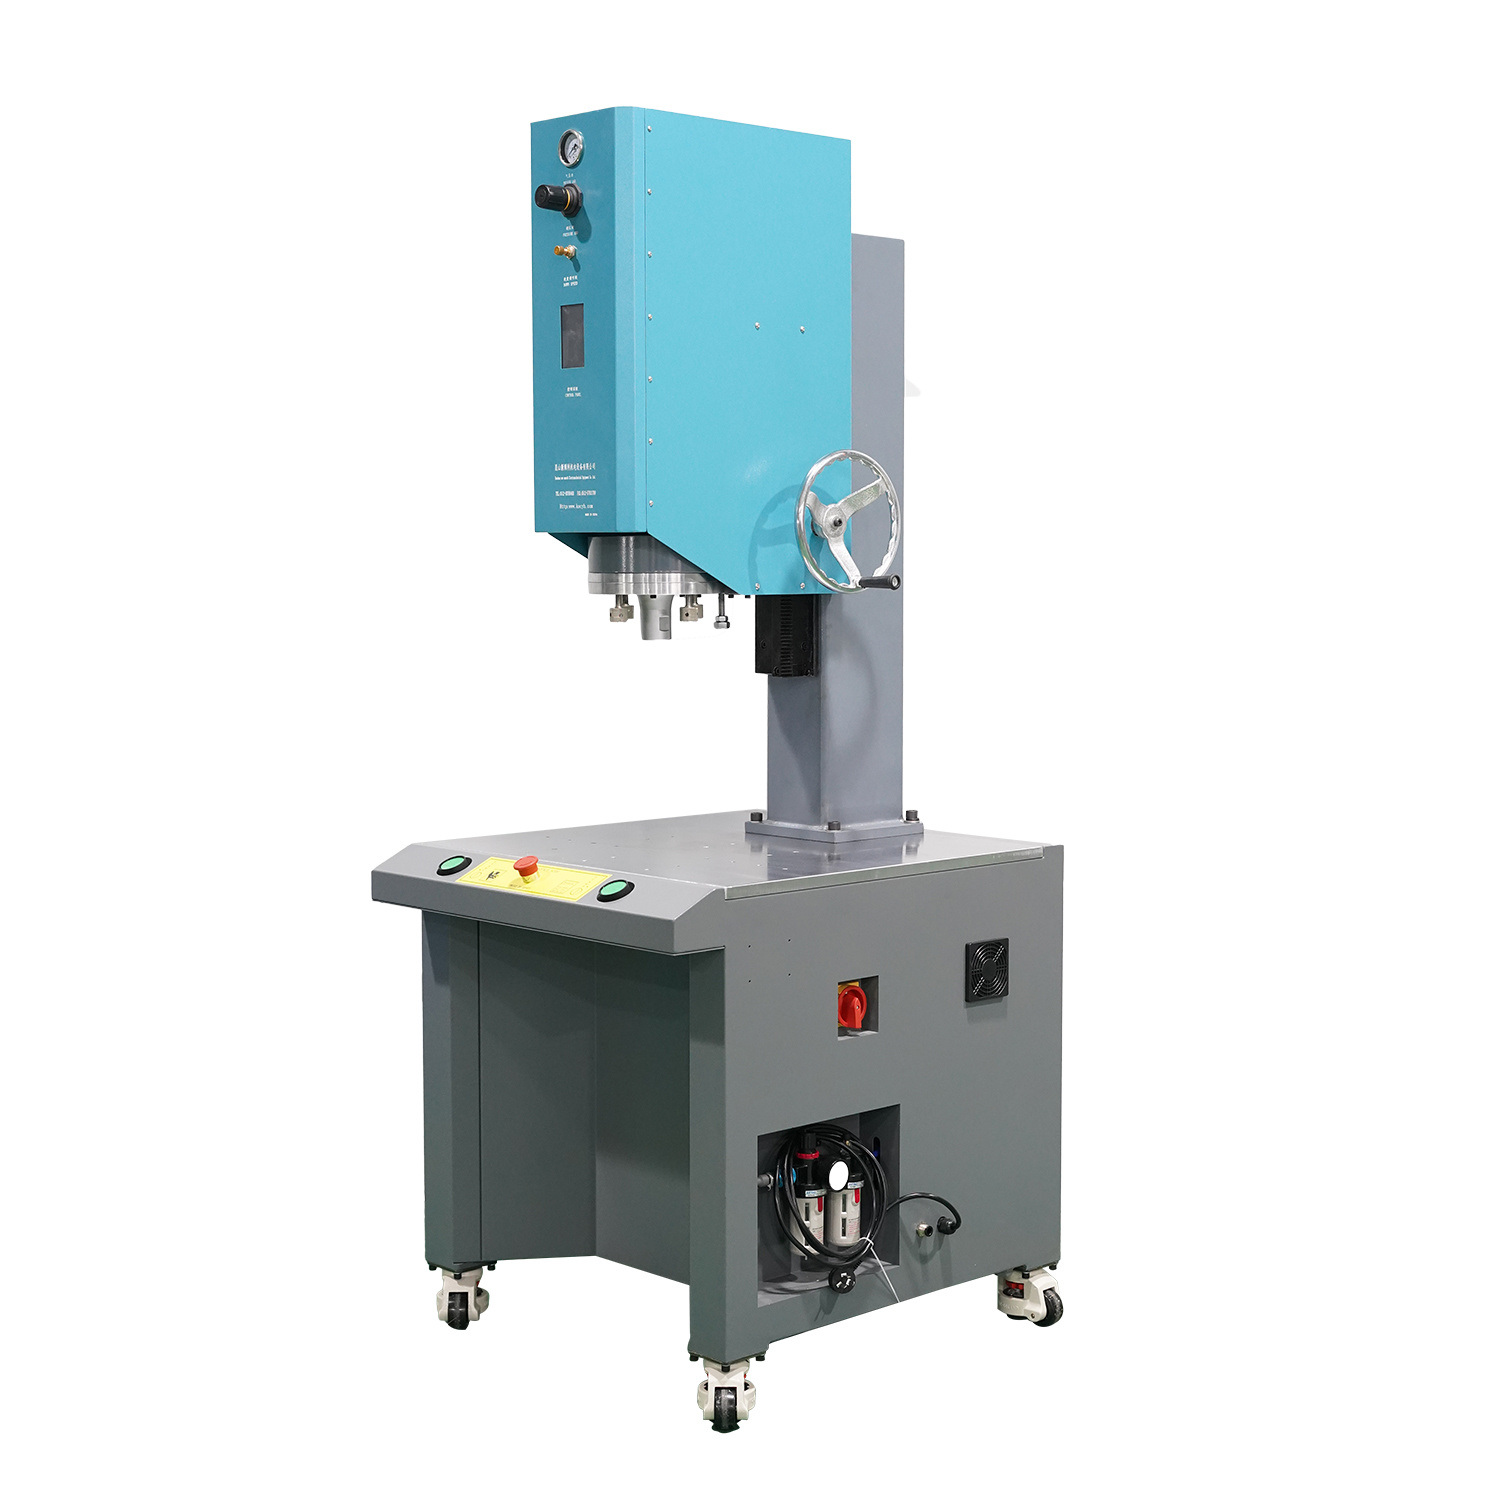 China Low Price Ultrasonic Metal Welding Machine Ultrasonic Plastic Welder For Sale China Schunk Ultrasonic Welding Machine High Frequency Plastic Welding